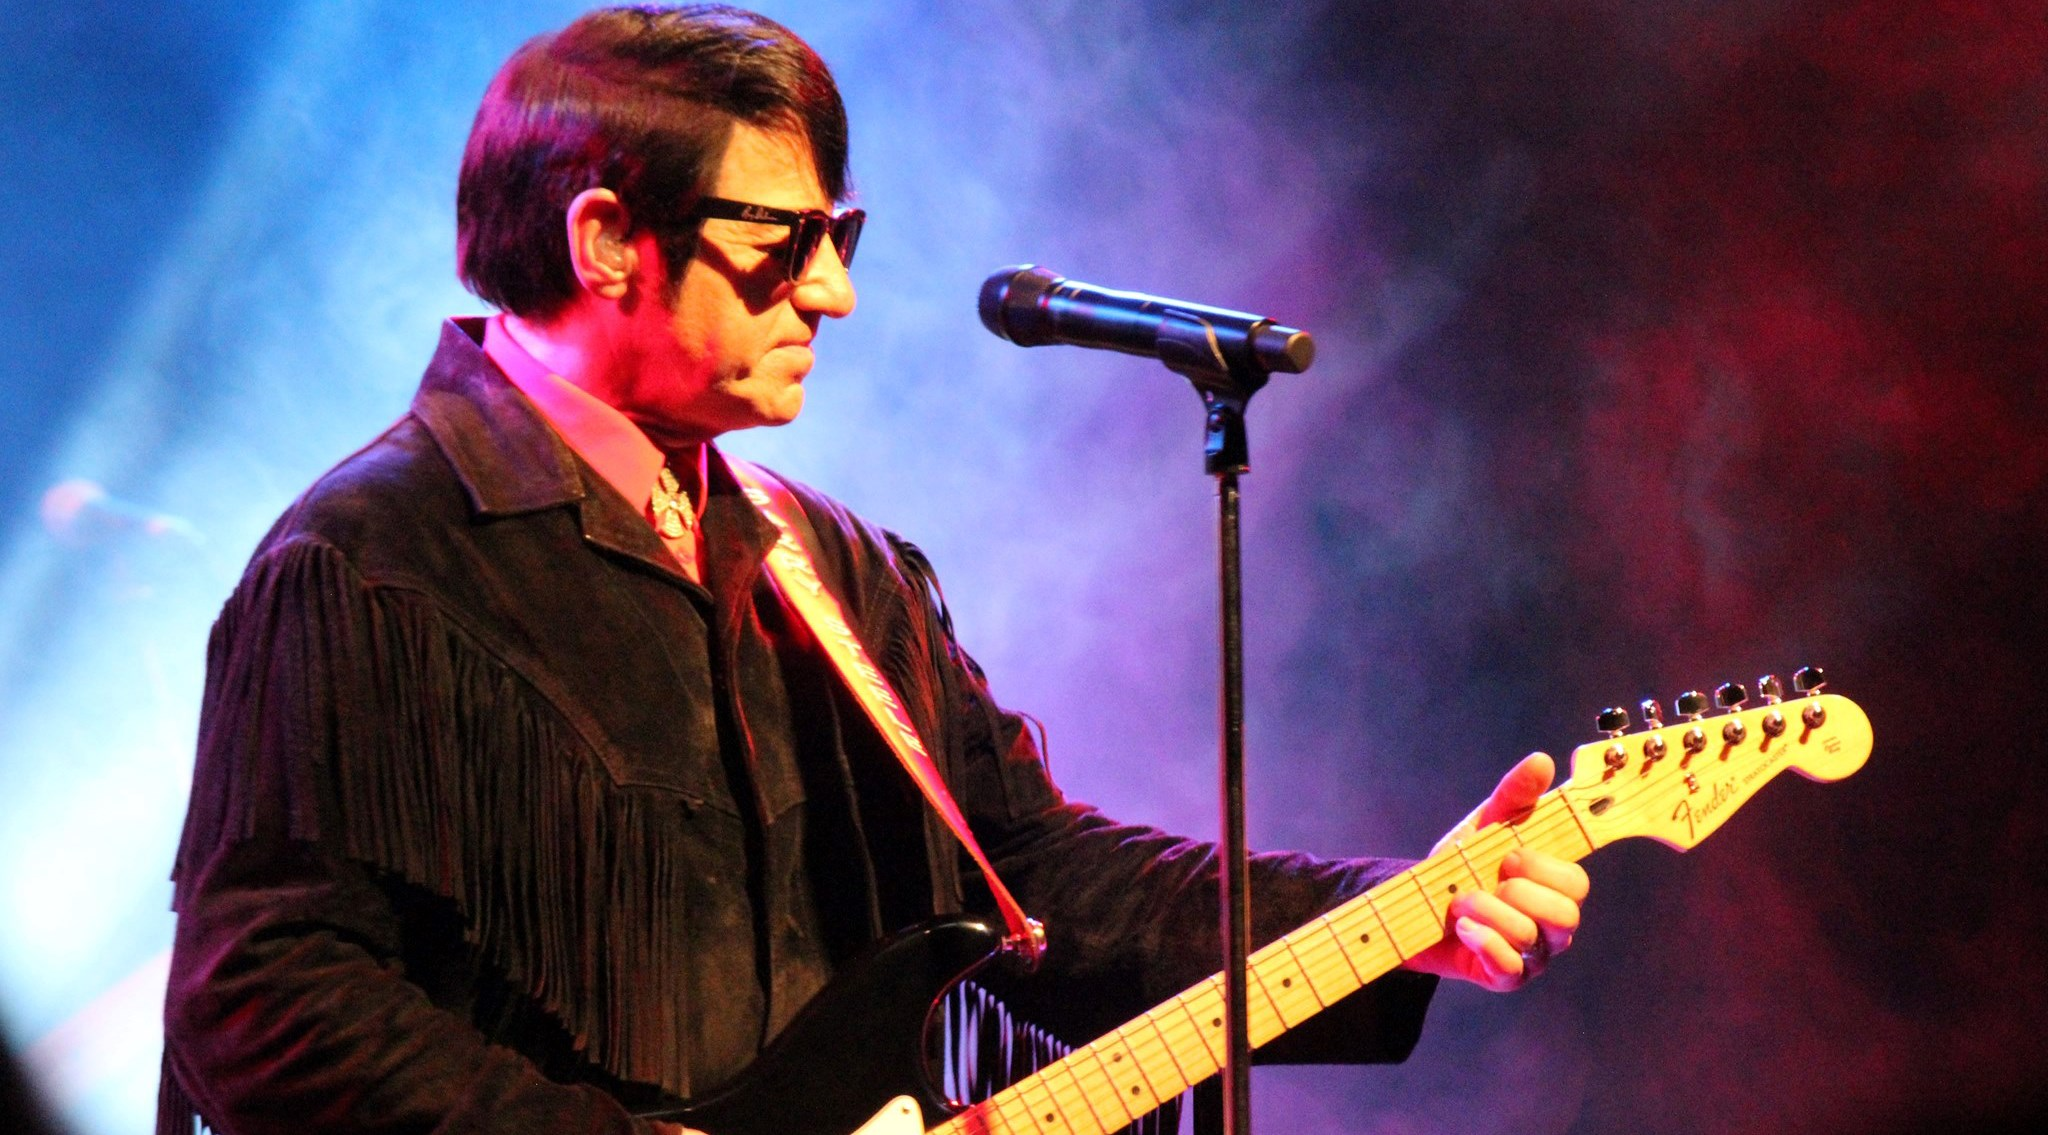 Barry Steele & Friends as The Roy Orbison Story